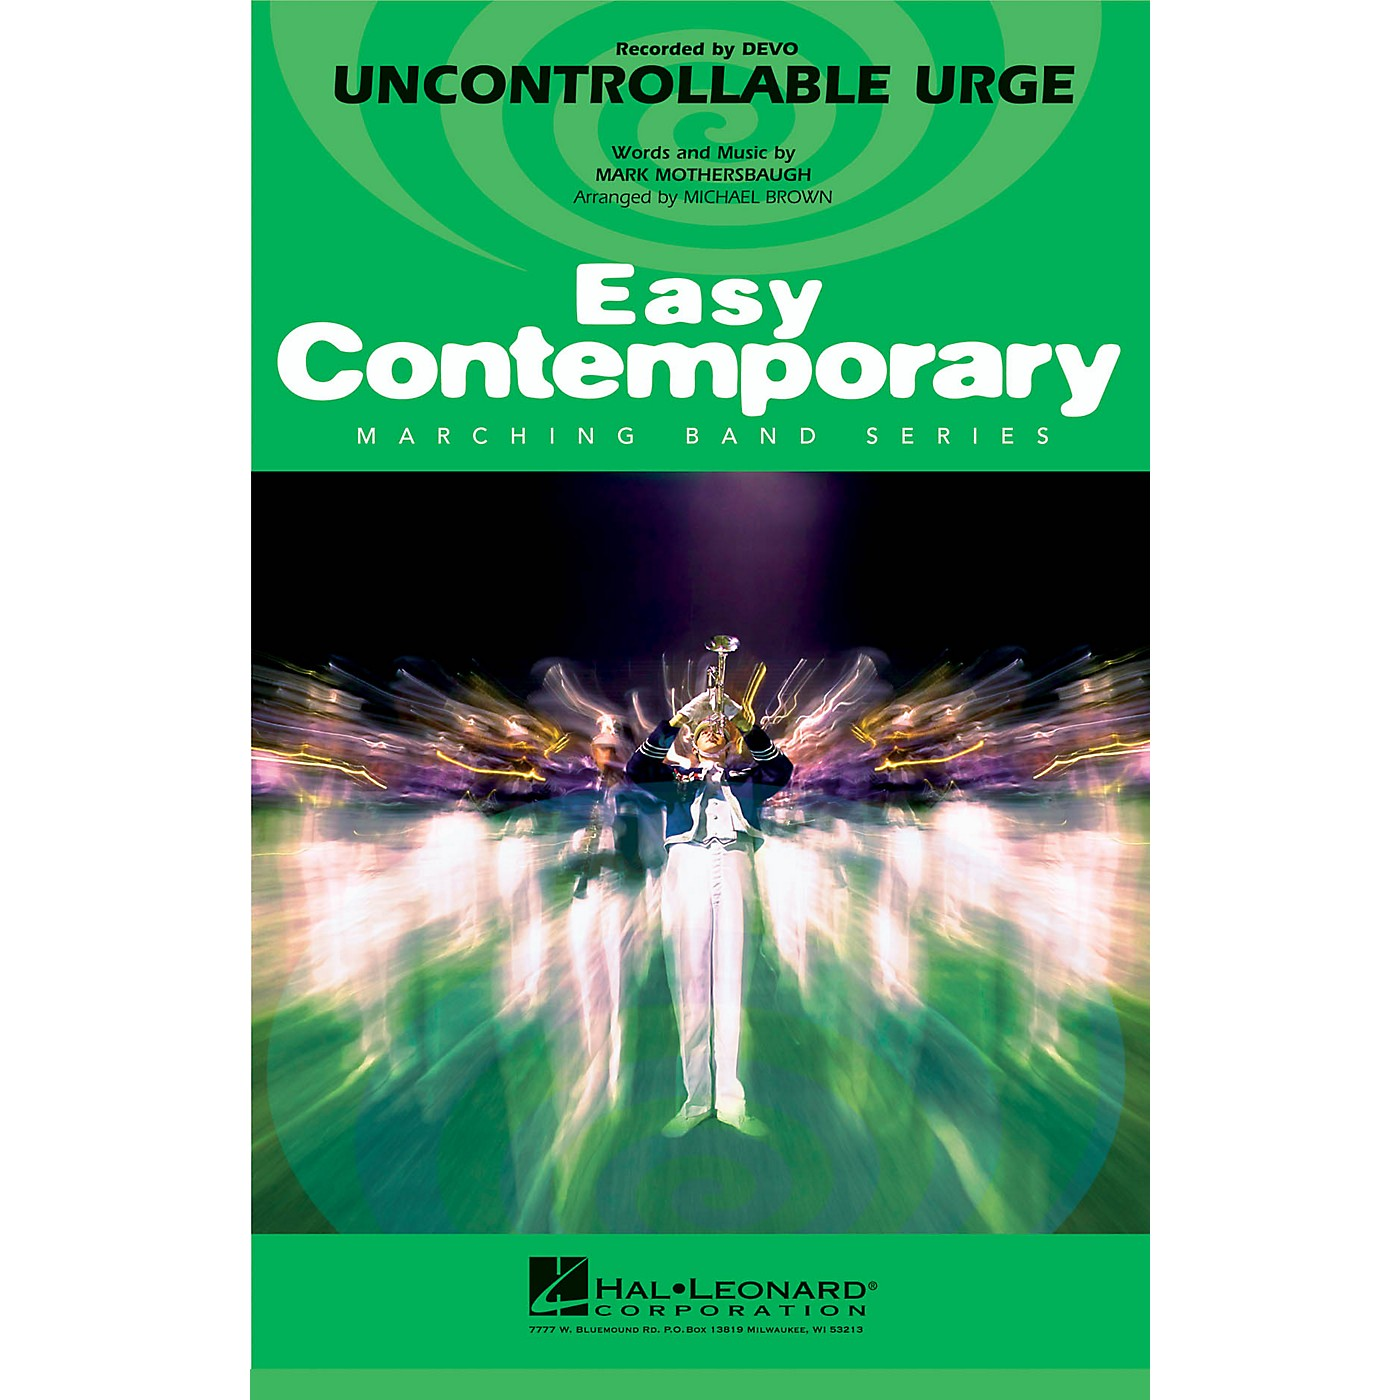 Hal Leonard Uncontrollable Urge Marching Band Level 2-3 by Devo Arranged by Michael Brown thumbnail